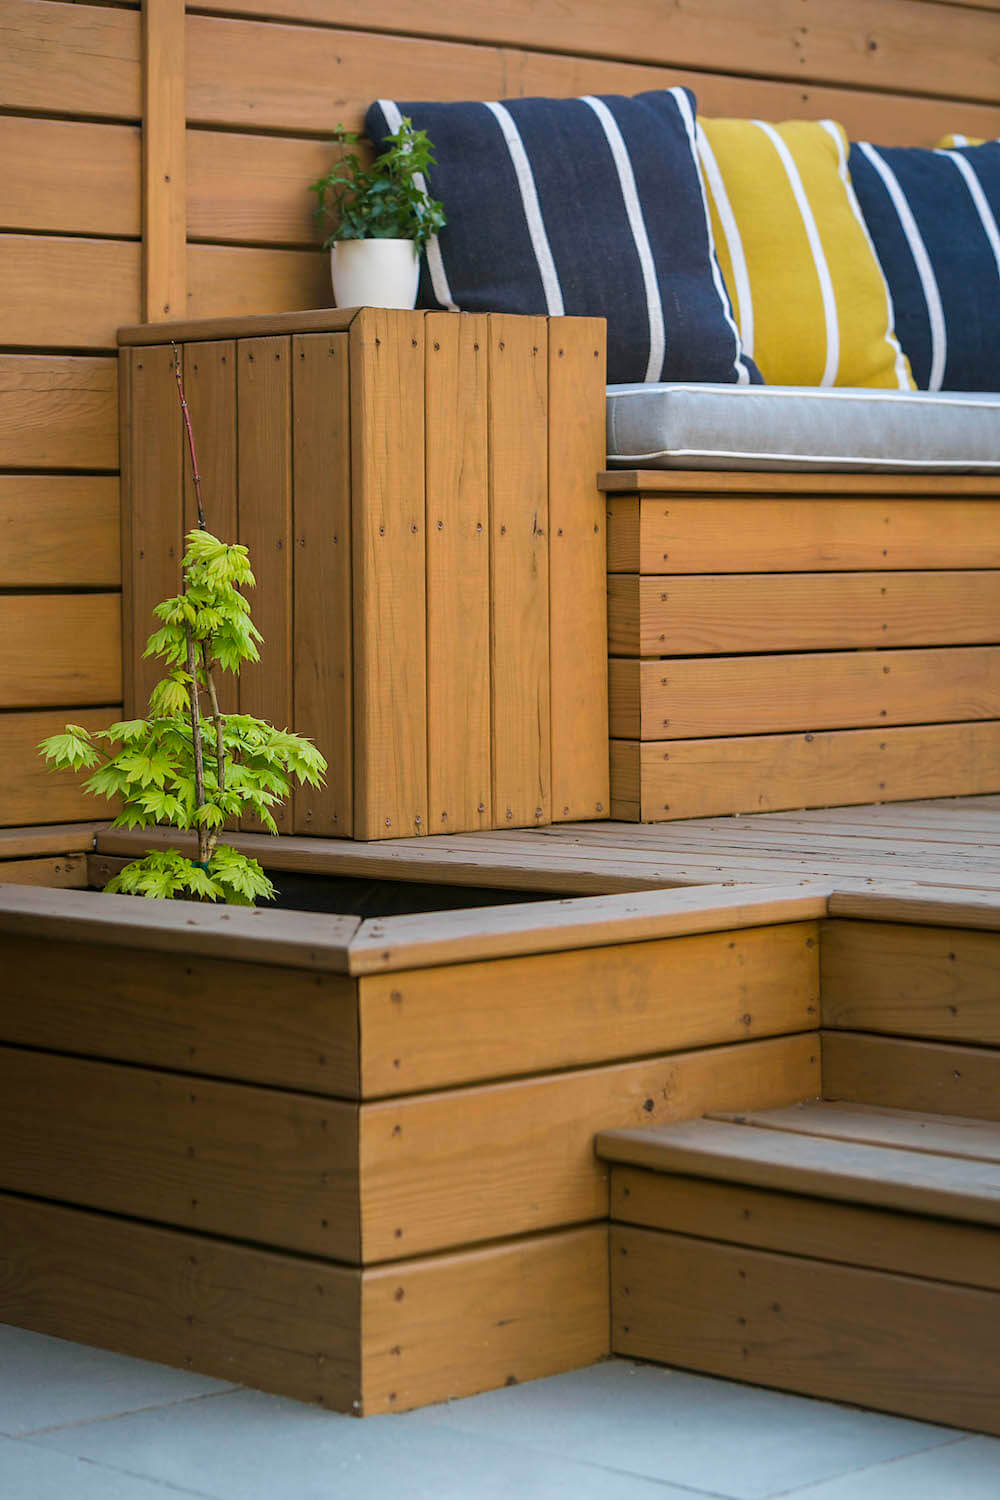 Image of an outdoor planter and bench seat